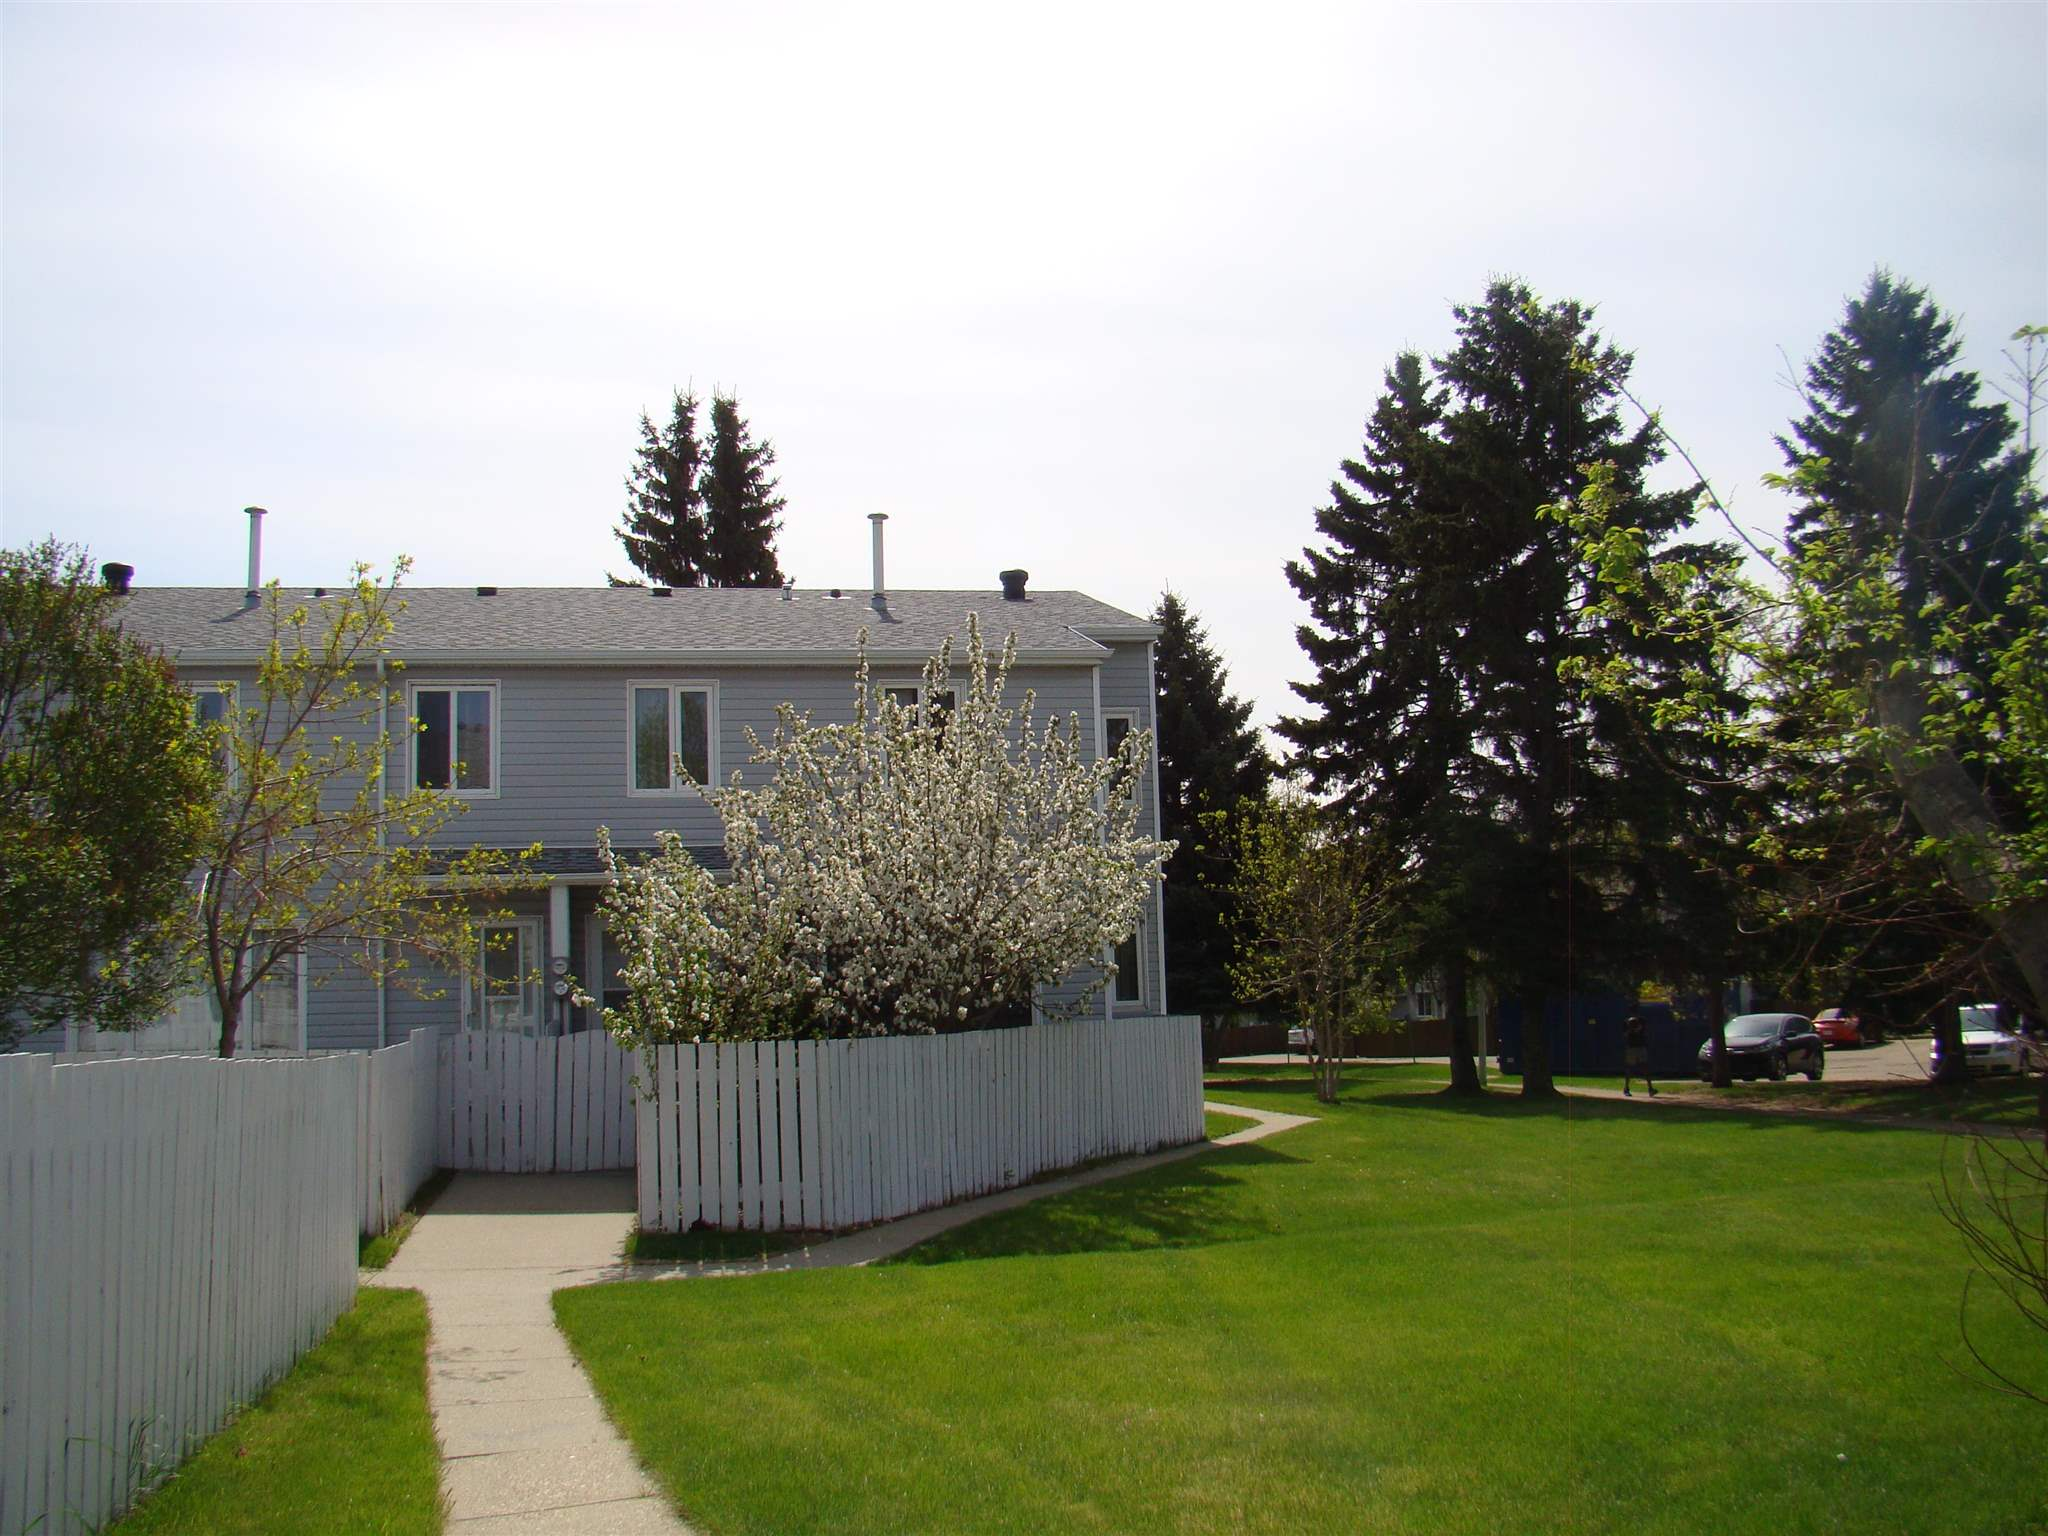 Excellent END UNIT 2- Story condo siding onto a green space!! The main floor features a big living room with loads of natural light coming in from the SW facing picture window, a updated kitchen with lots of cupboard and granite counter top space a, ceramic tile flooring and a dining room with a extra window. The upper level has 3 good size bedrooms, and a full  4piece bath. The basement is fully finished with a large family room, another 4 piece bath plus a laundry/utility room. This unit has a fantastic location with a south west facing back yard that over looks a green space. There is street parking close by as well. The complex is well run and has had may renovations over the years. Low condo fee of $230 a month. Complex is close to many schools, Londonderry mall, public transportation and Clareview rec center. Great for first time buyers or investors.